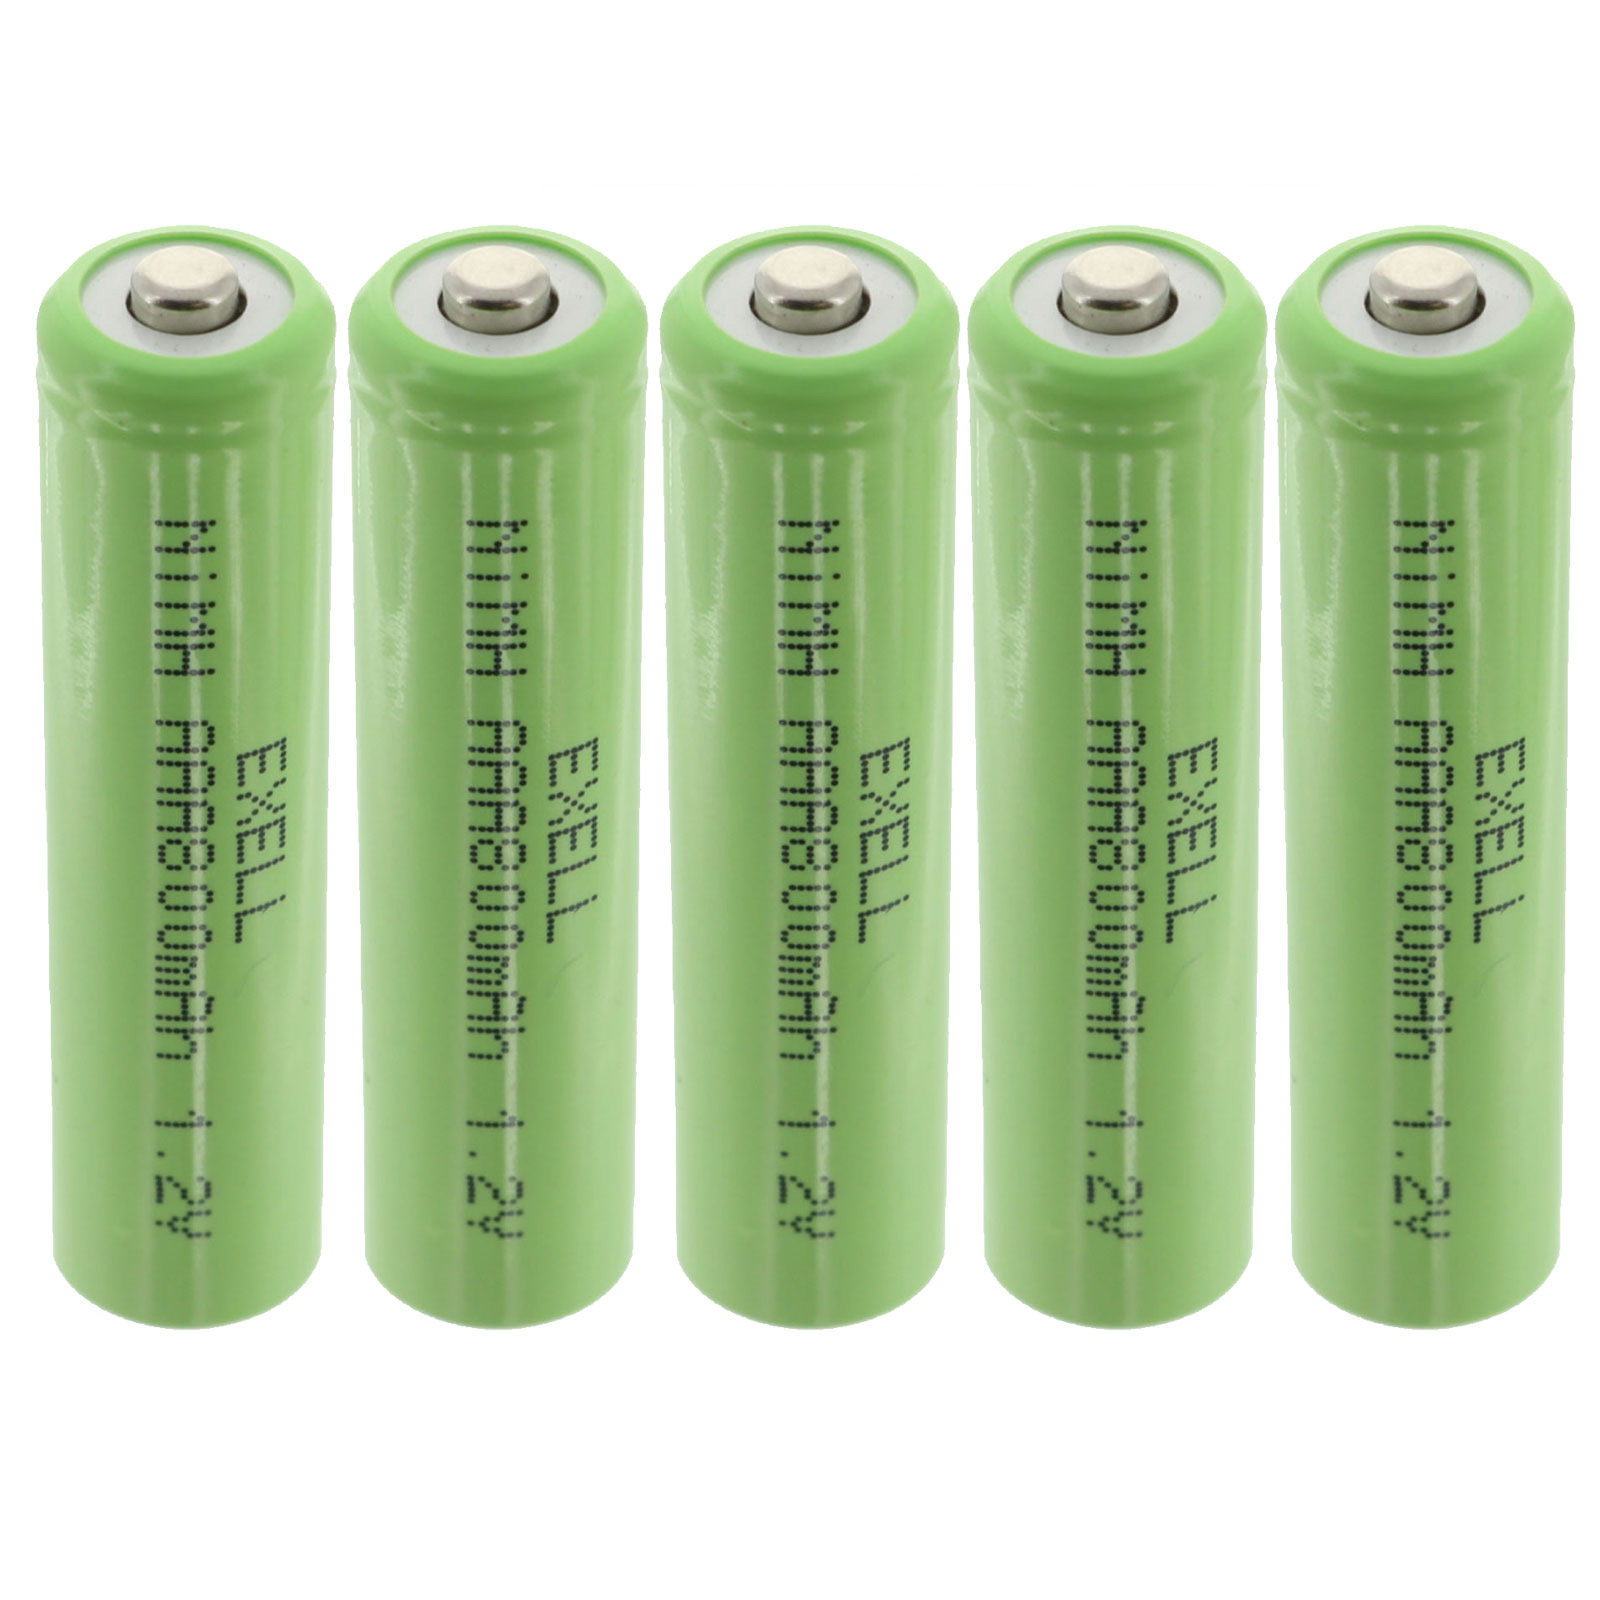 Nimh AA Rechargeable Battery with Button Top for Solar Garden Lights 10PC